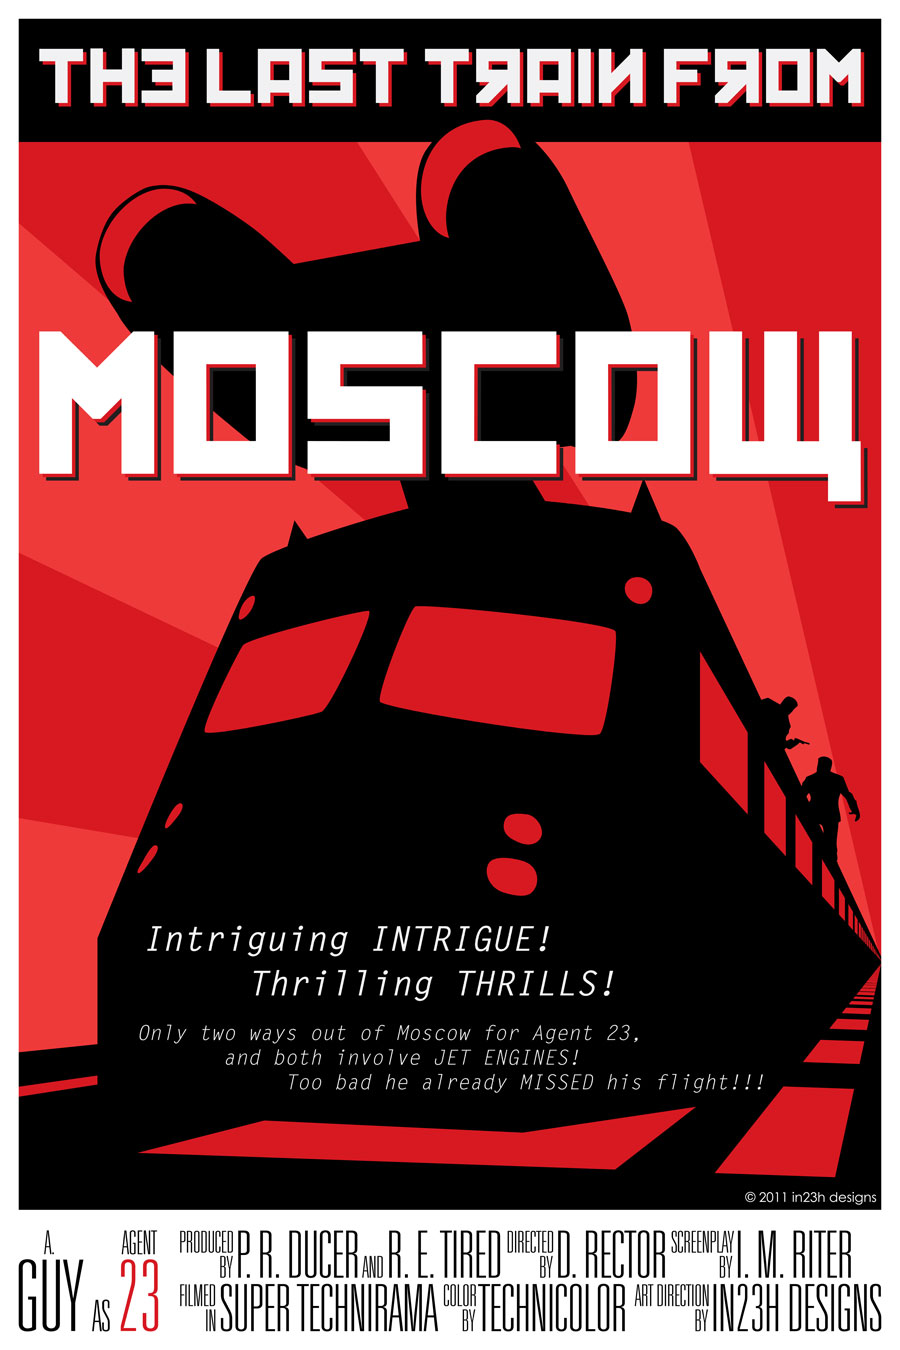 Last Train From Moscow